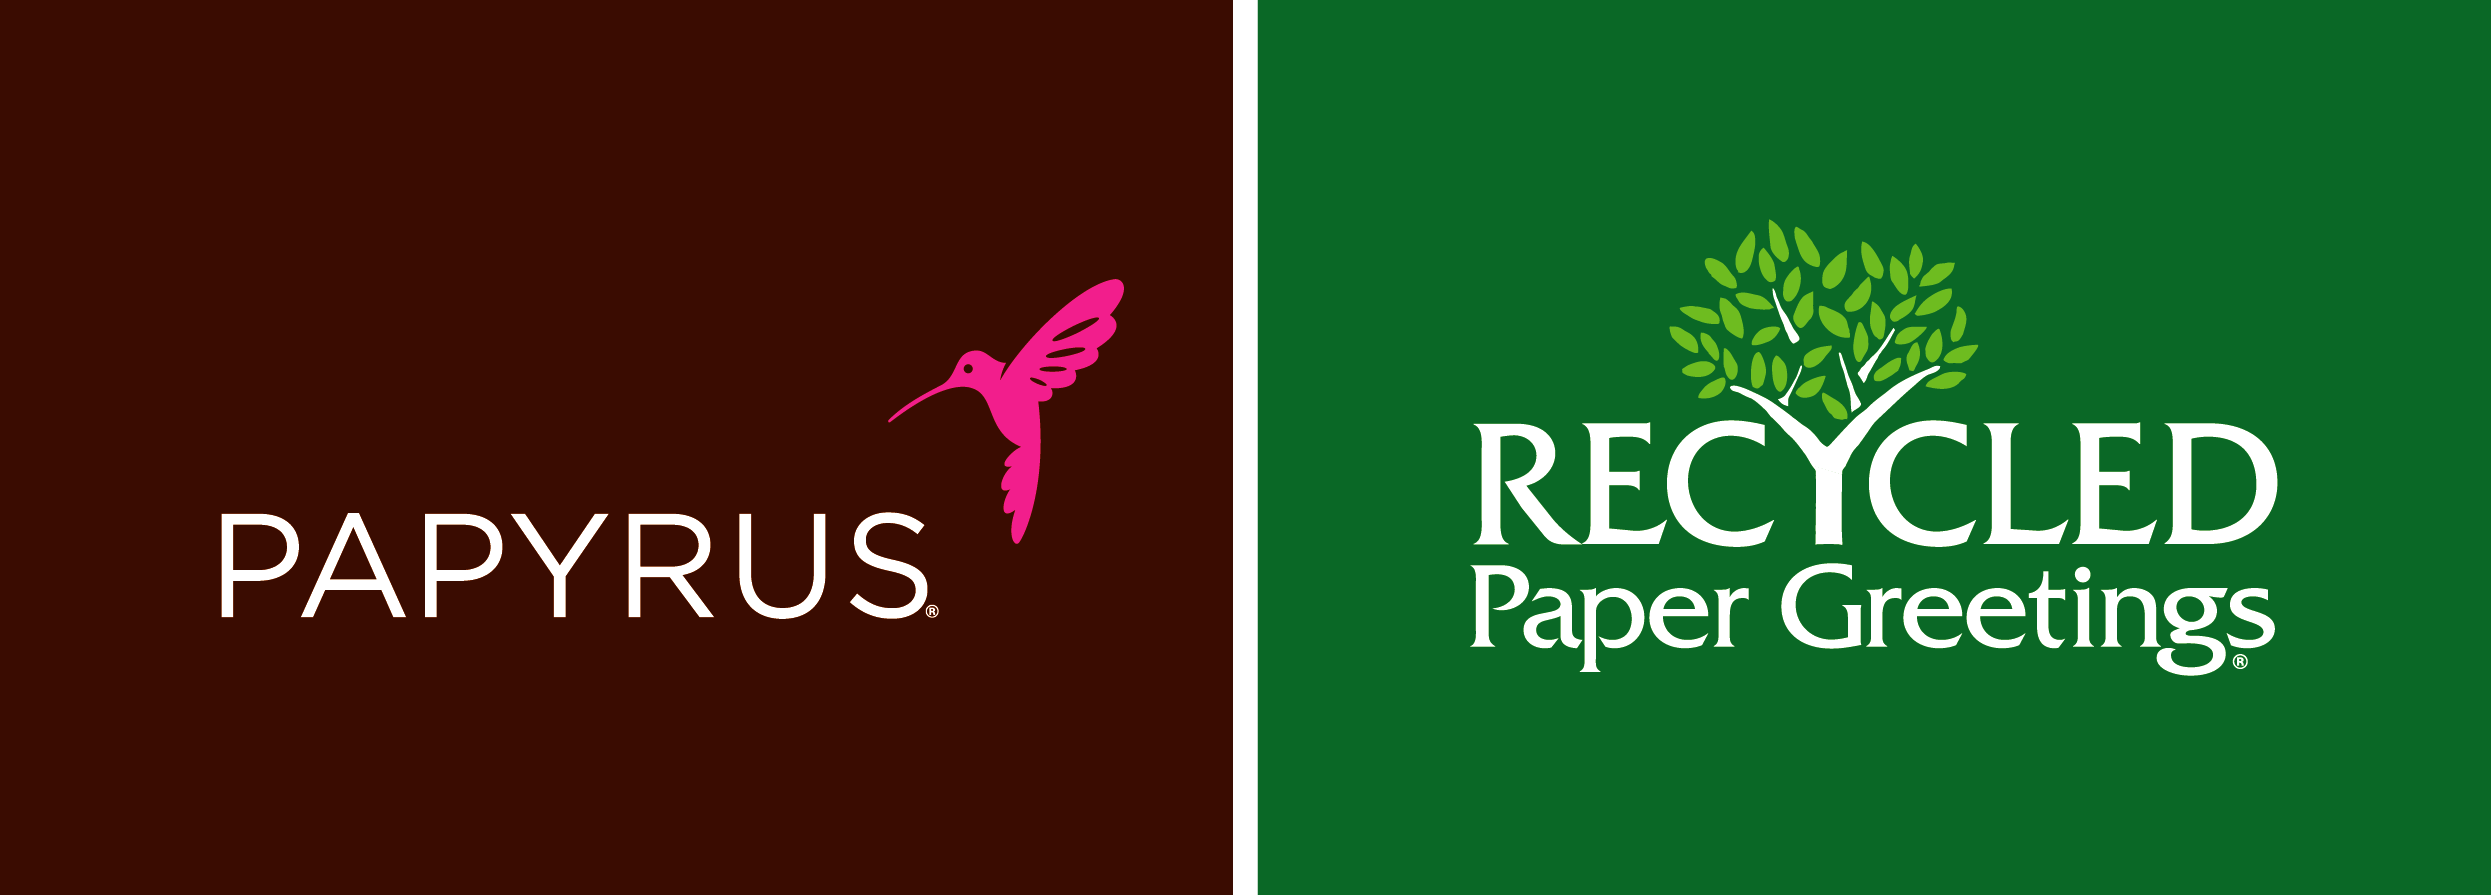 Papyrus - Recycled Paper Greetings - Logo